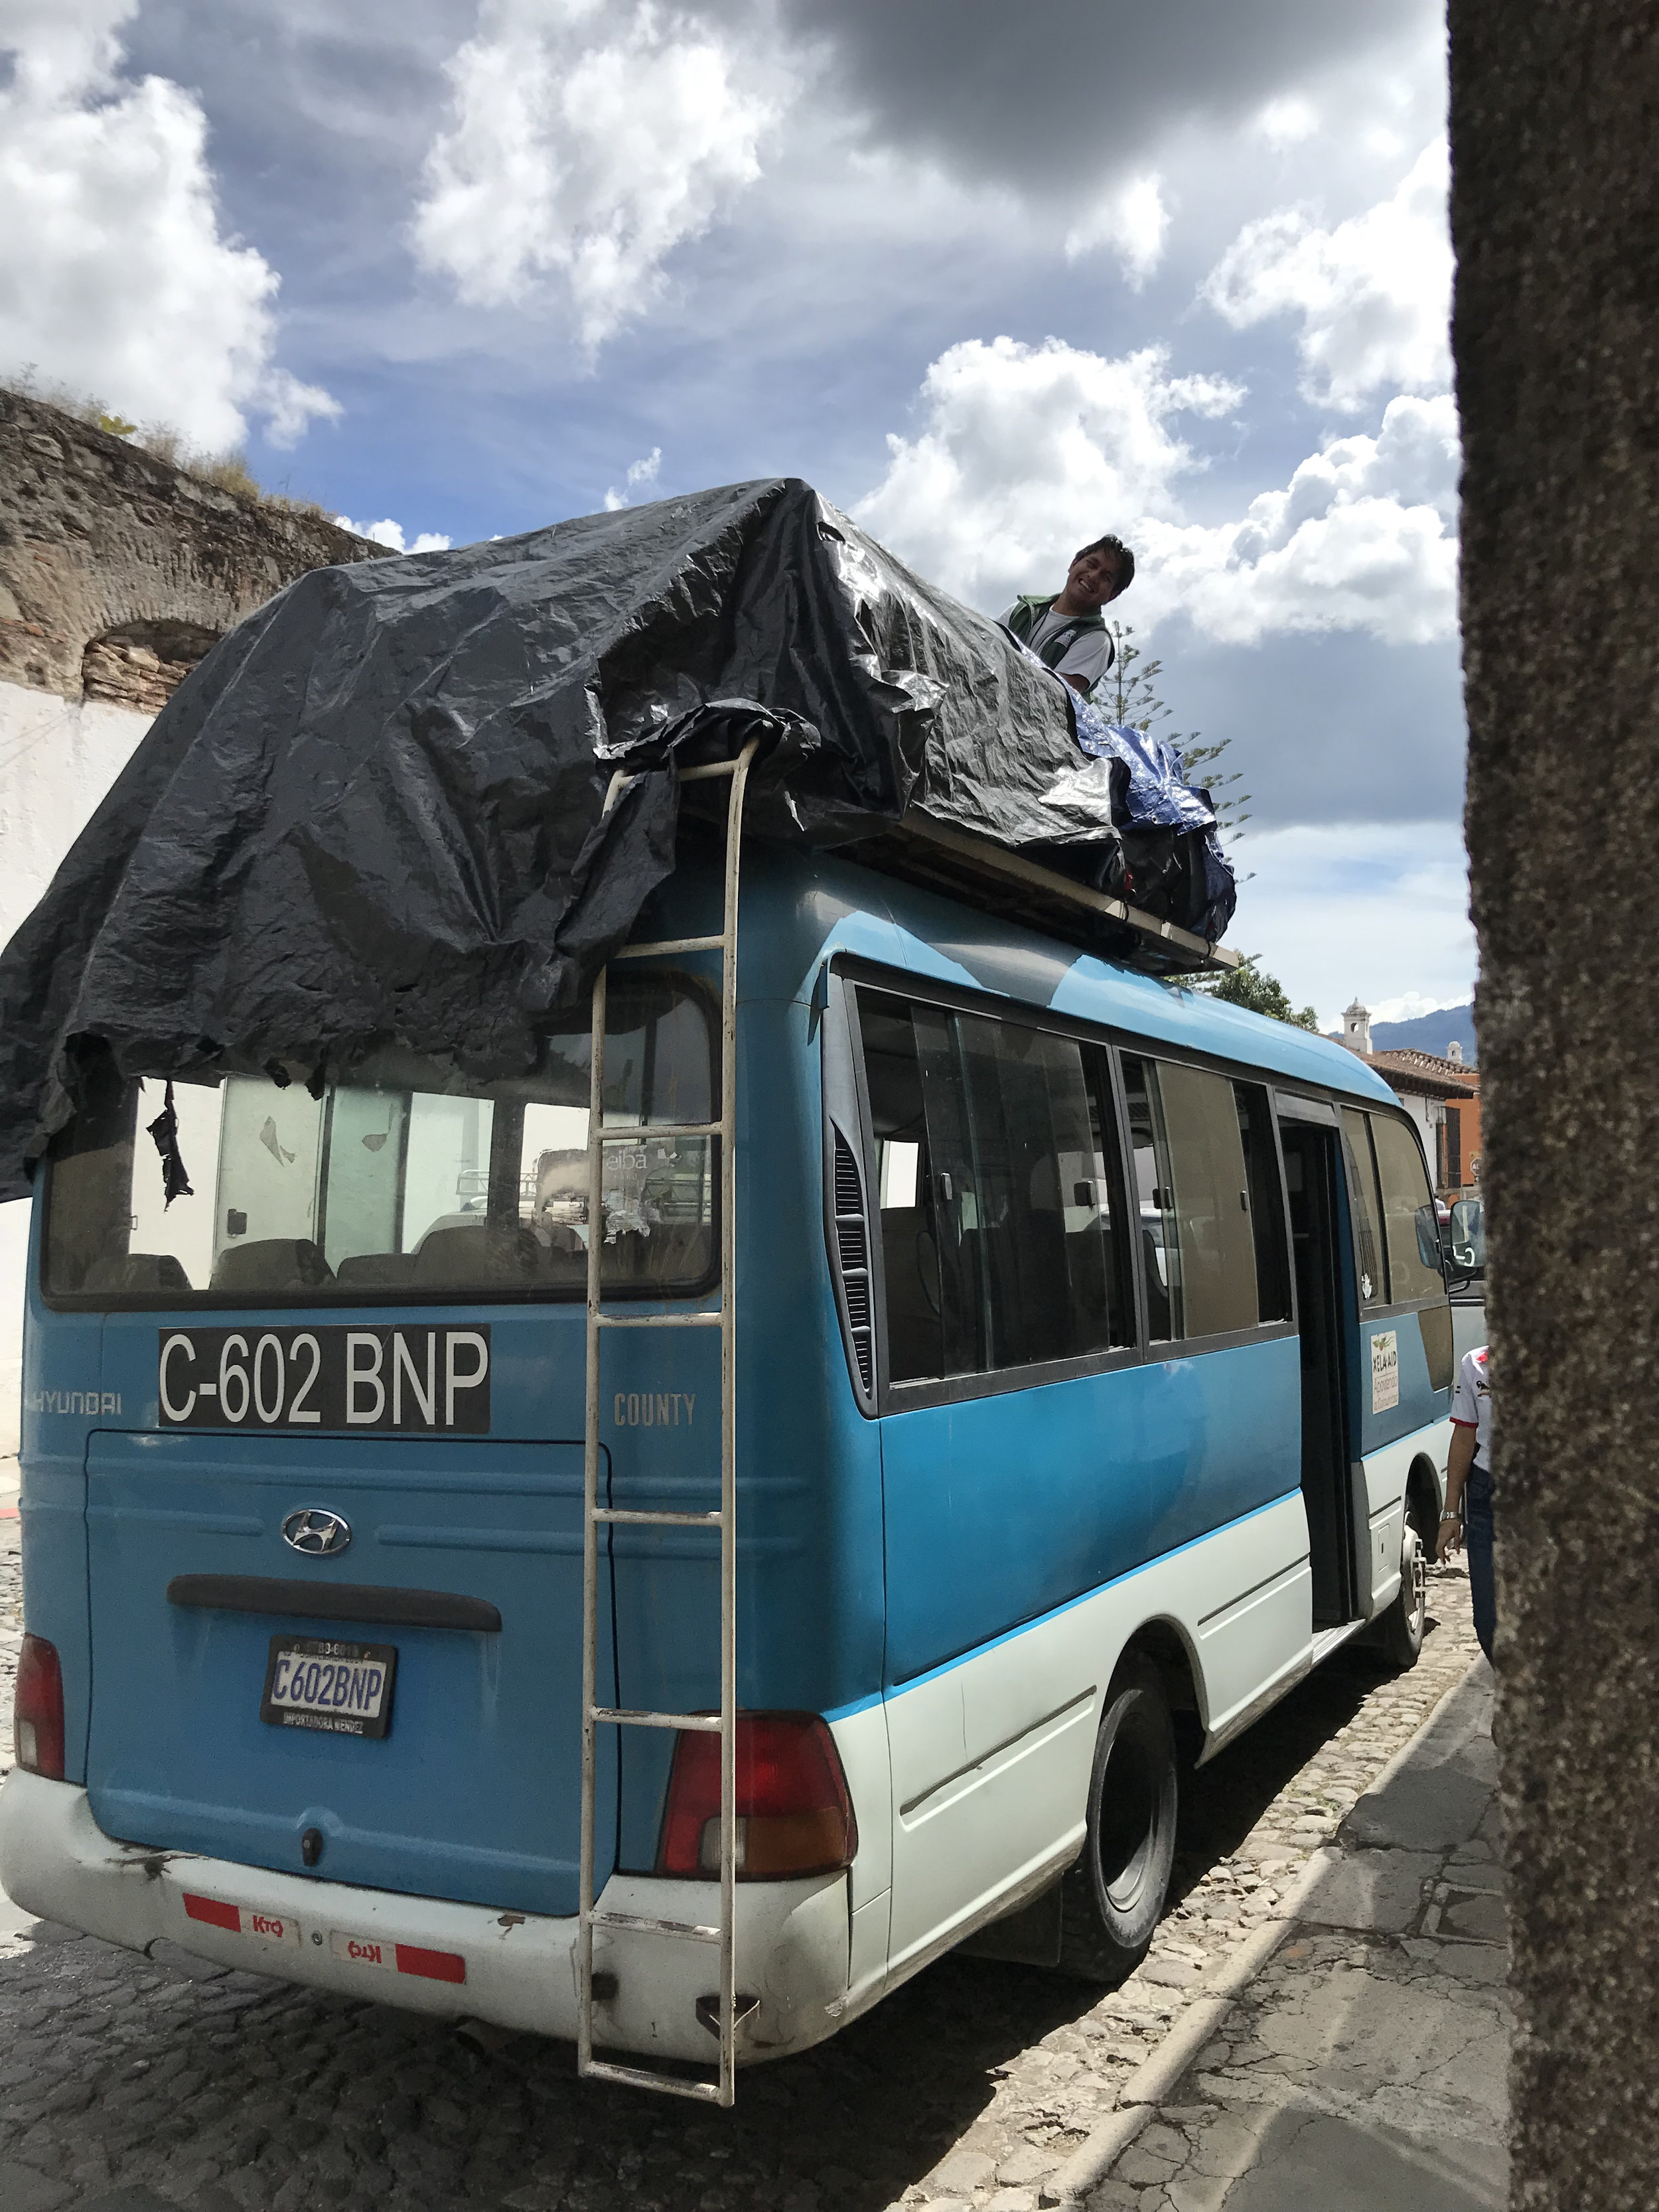 Our trusty driver, Carlos, loading luggage on top of our bus while Luis rounds us up and also drives a van for us.